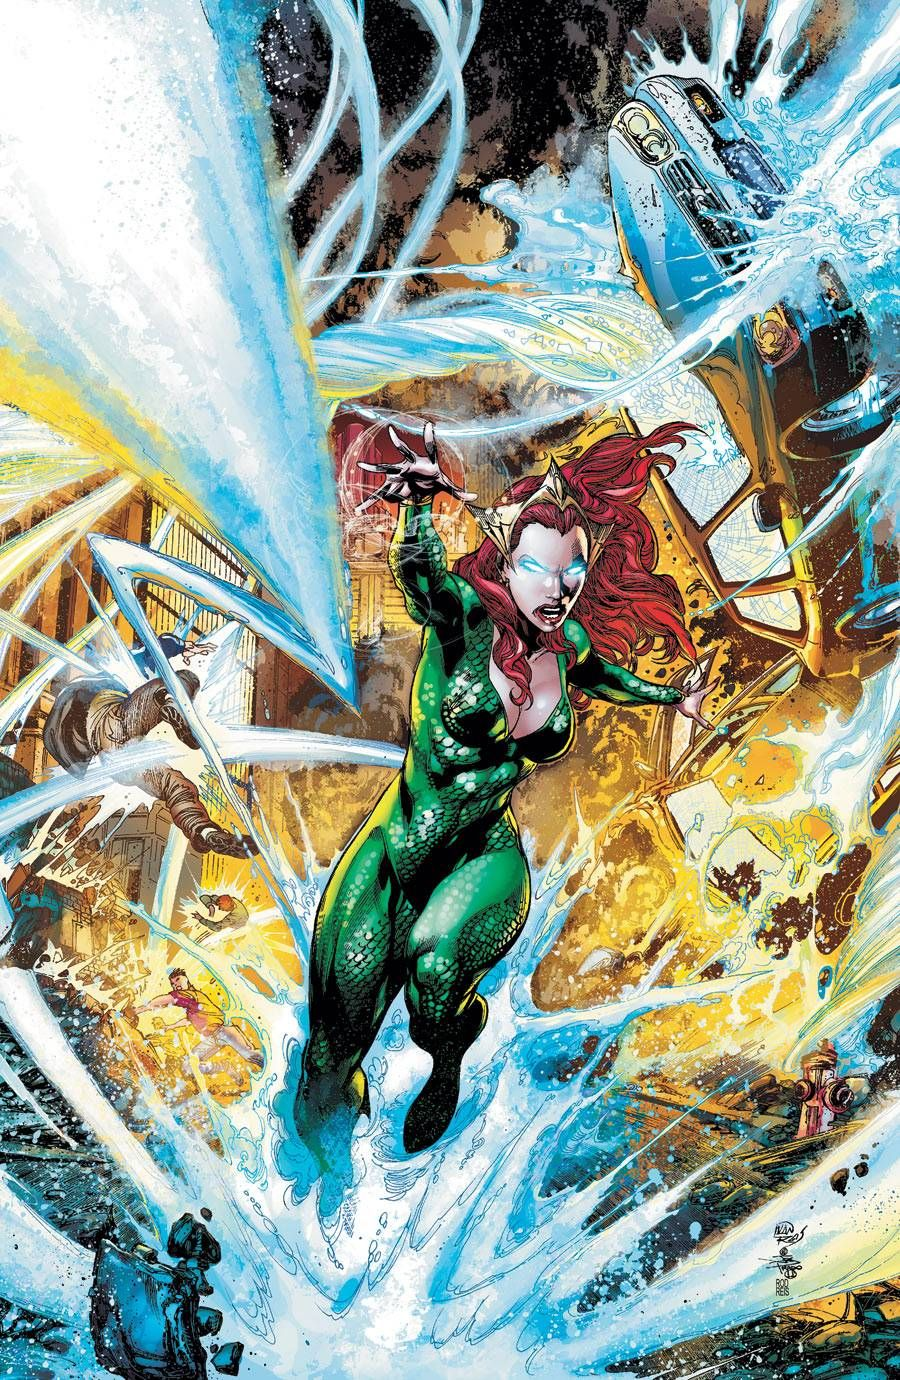 Mera screenshots, images and pictures - Comic Vine   DC